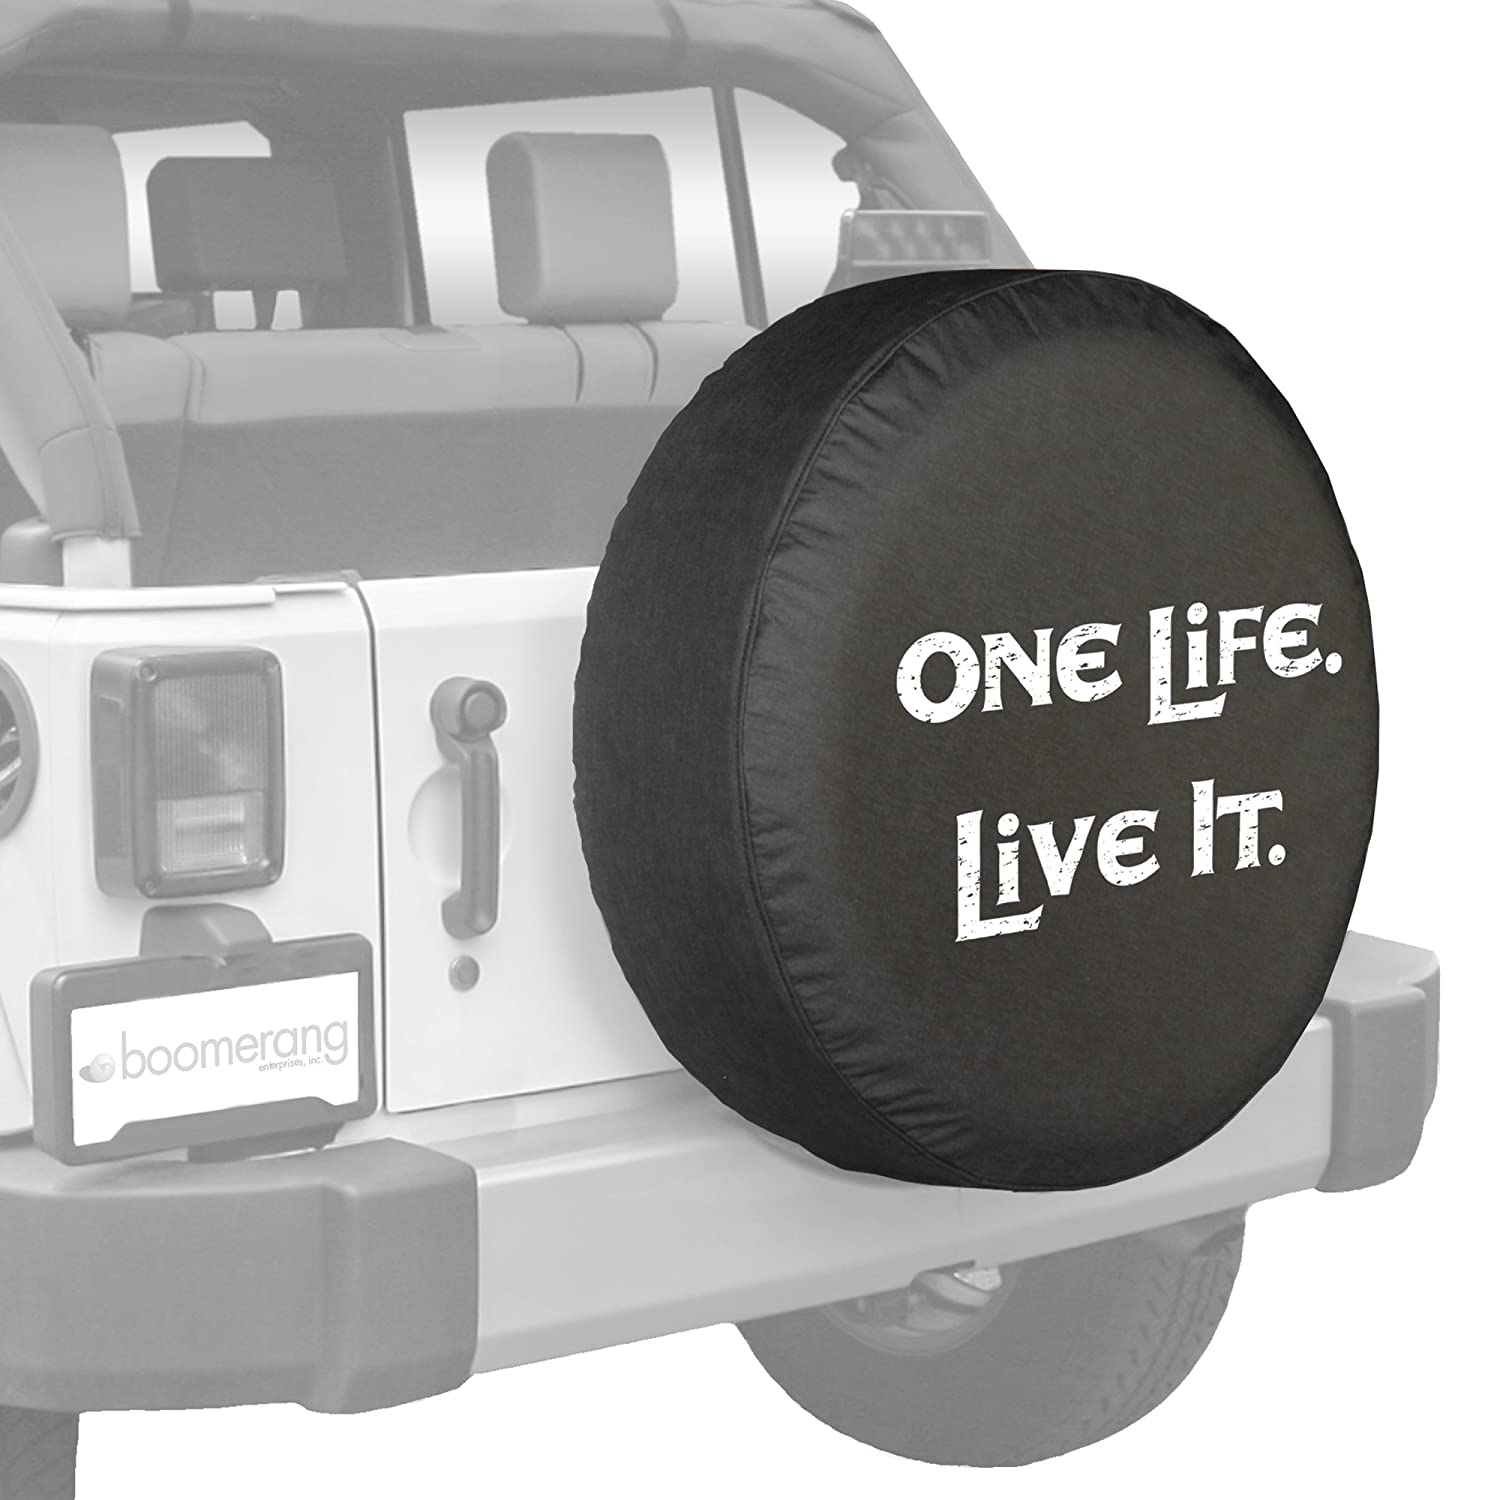 tire br spare amazon jeep cover com silver sparecover dp automotive covers